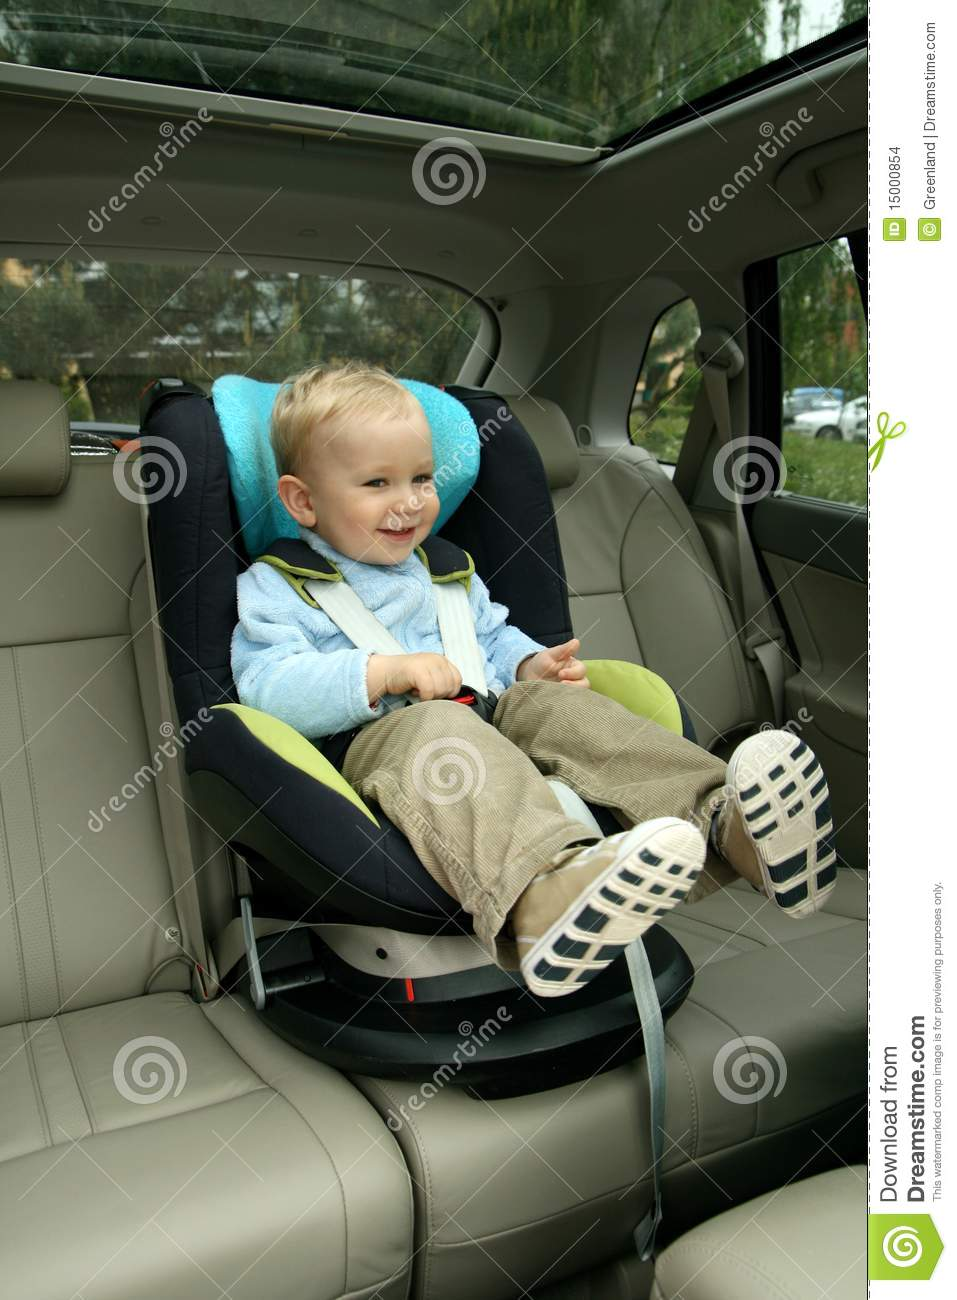 Baby In Car Seat Stock Photo Image Of Security Face